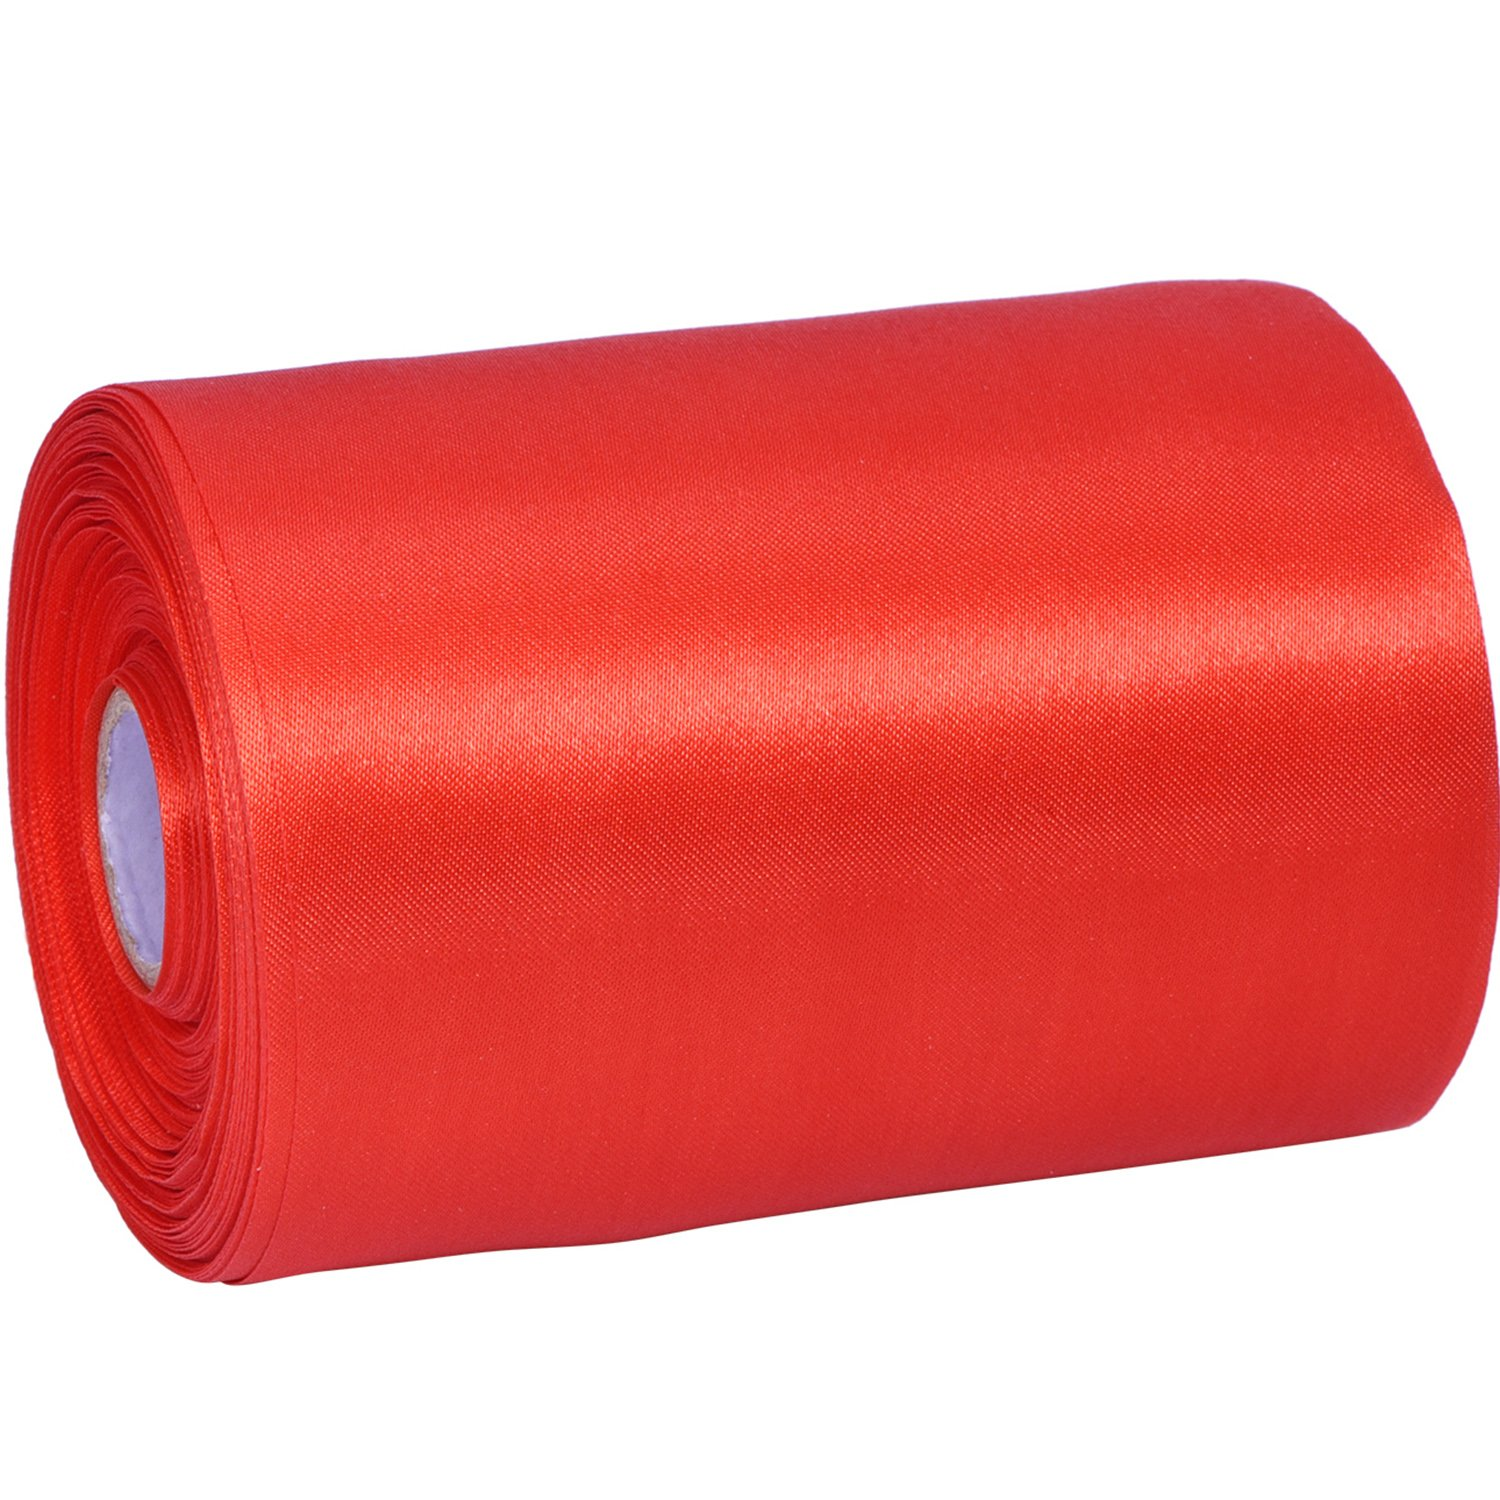 Wide Satin Ribbon Solid Color Decoration Ribbon Single-sided Craft Ribbon, Red, 22 Yard Outus